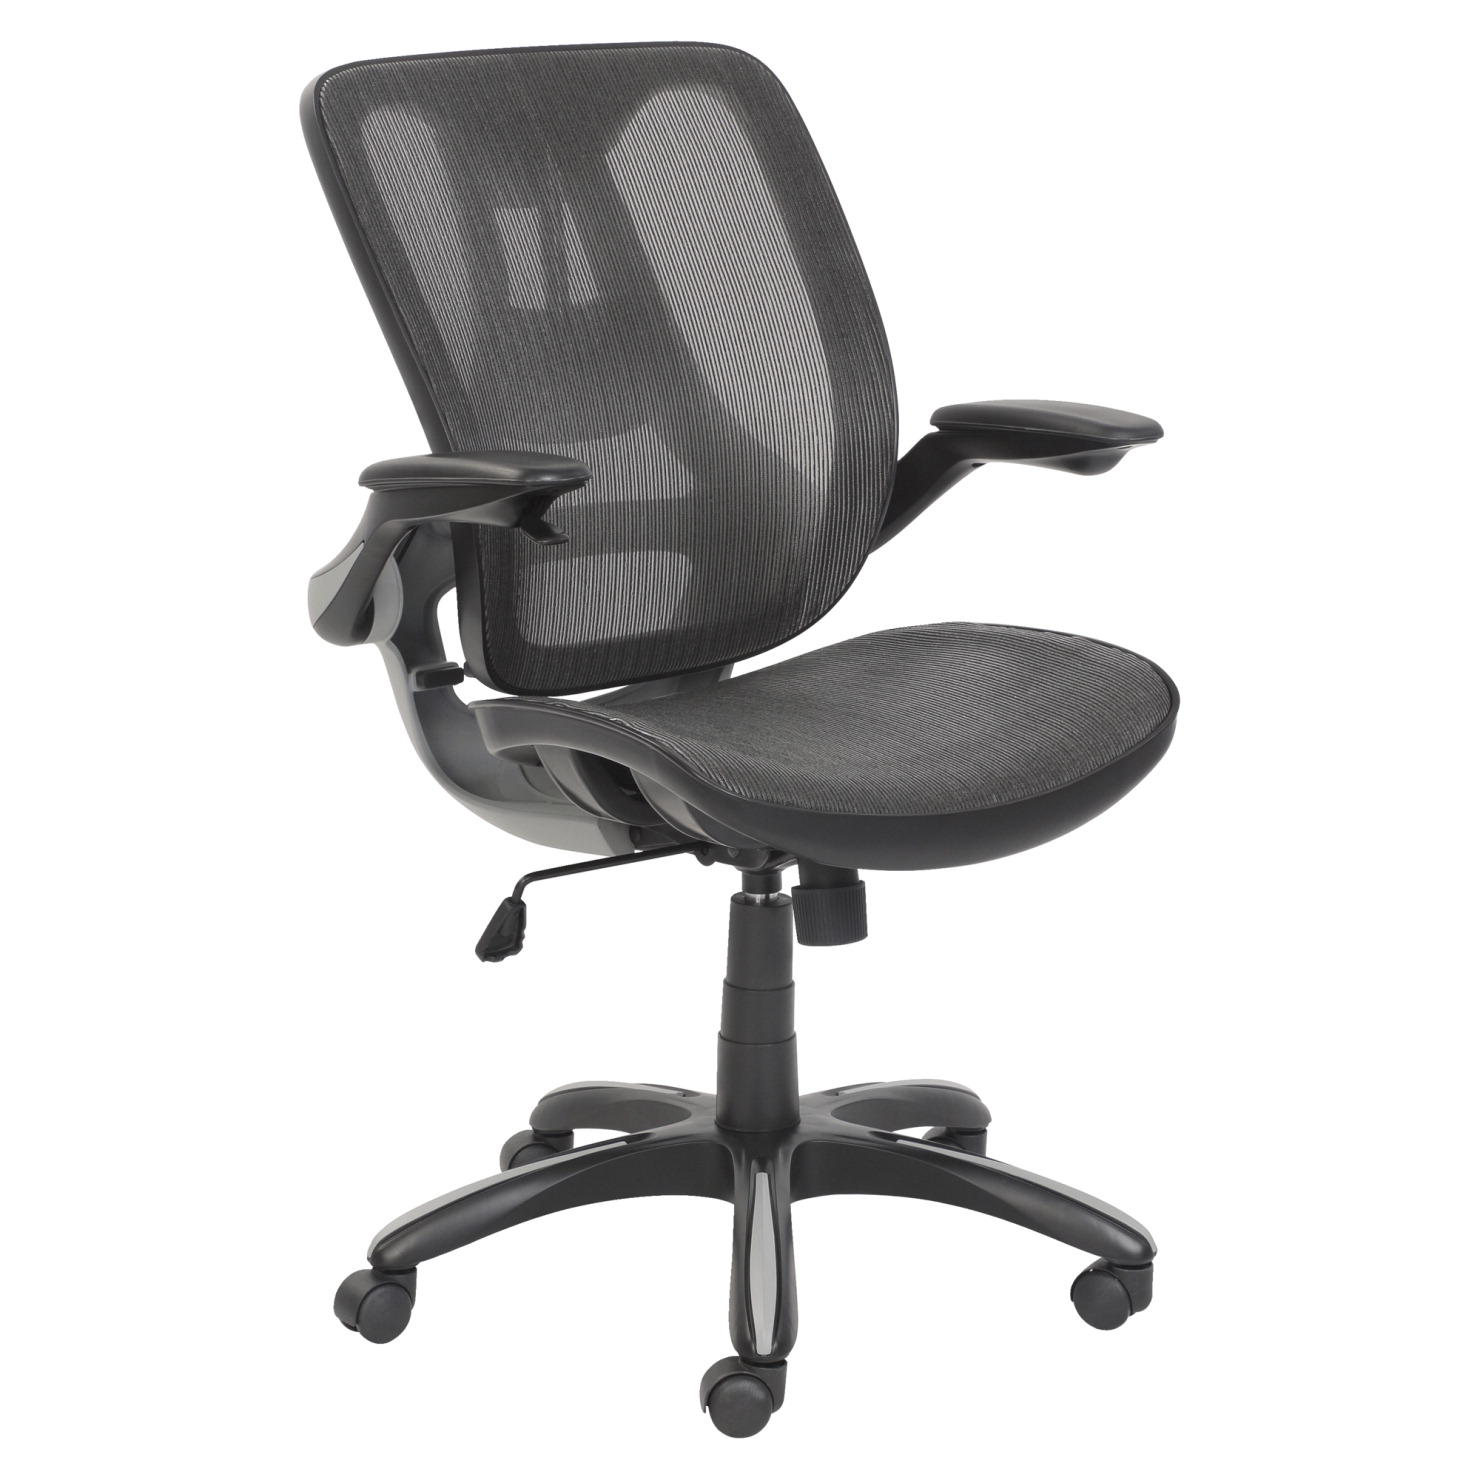 Classroom Select Nirvana Lounge Chair, 34 x 31 x 34-1/2 Inches, Gray